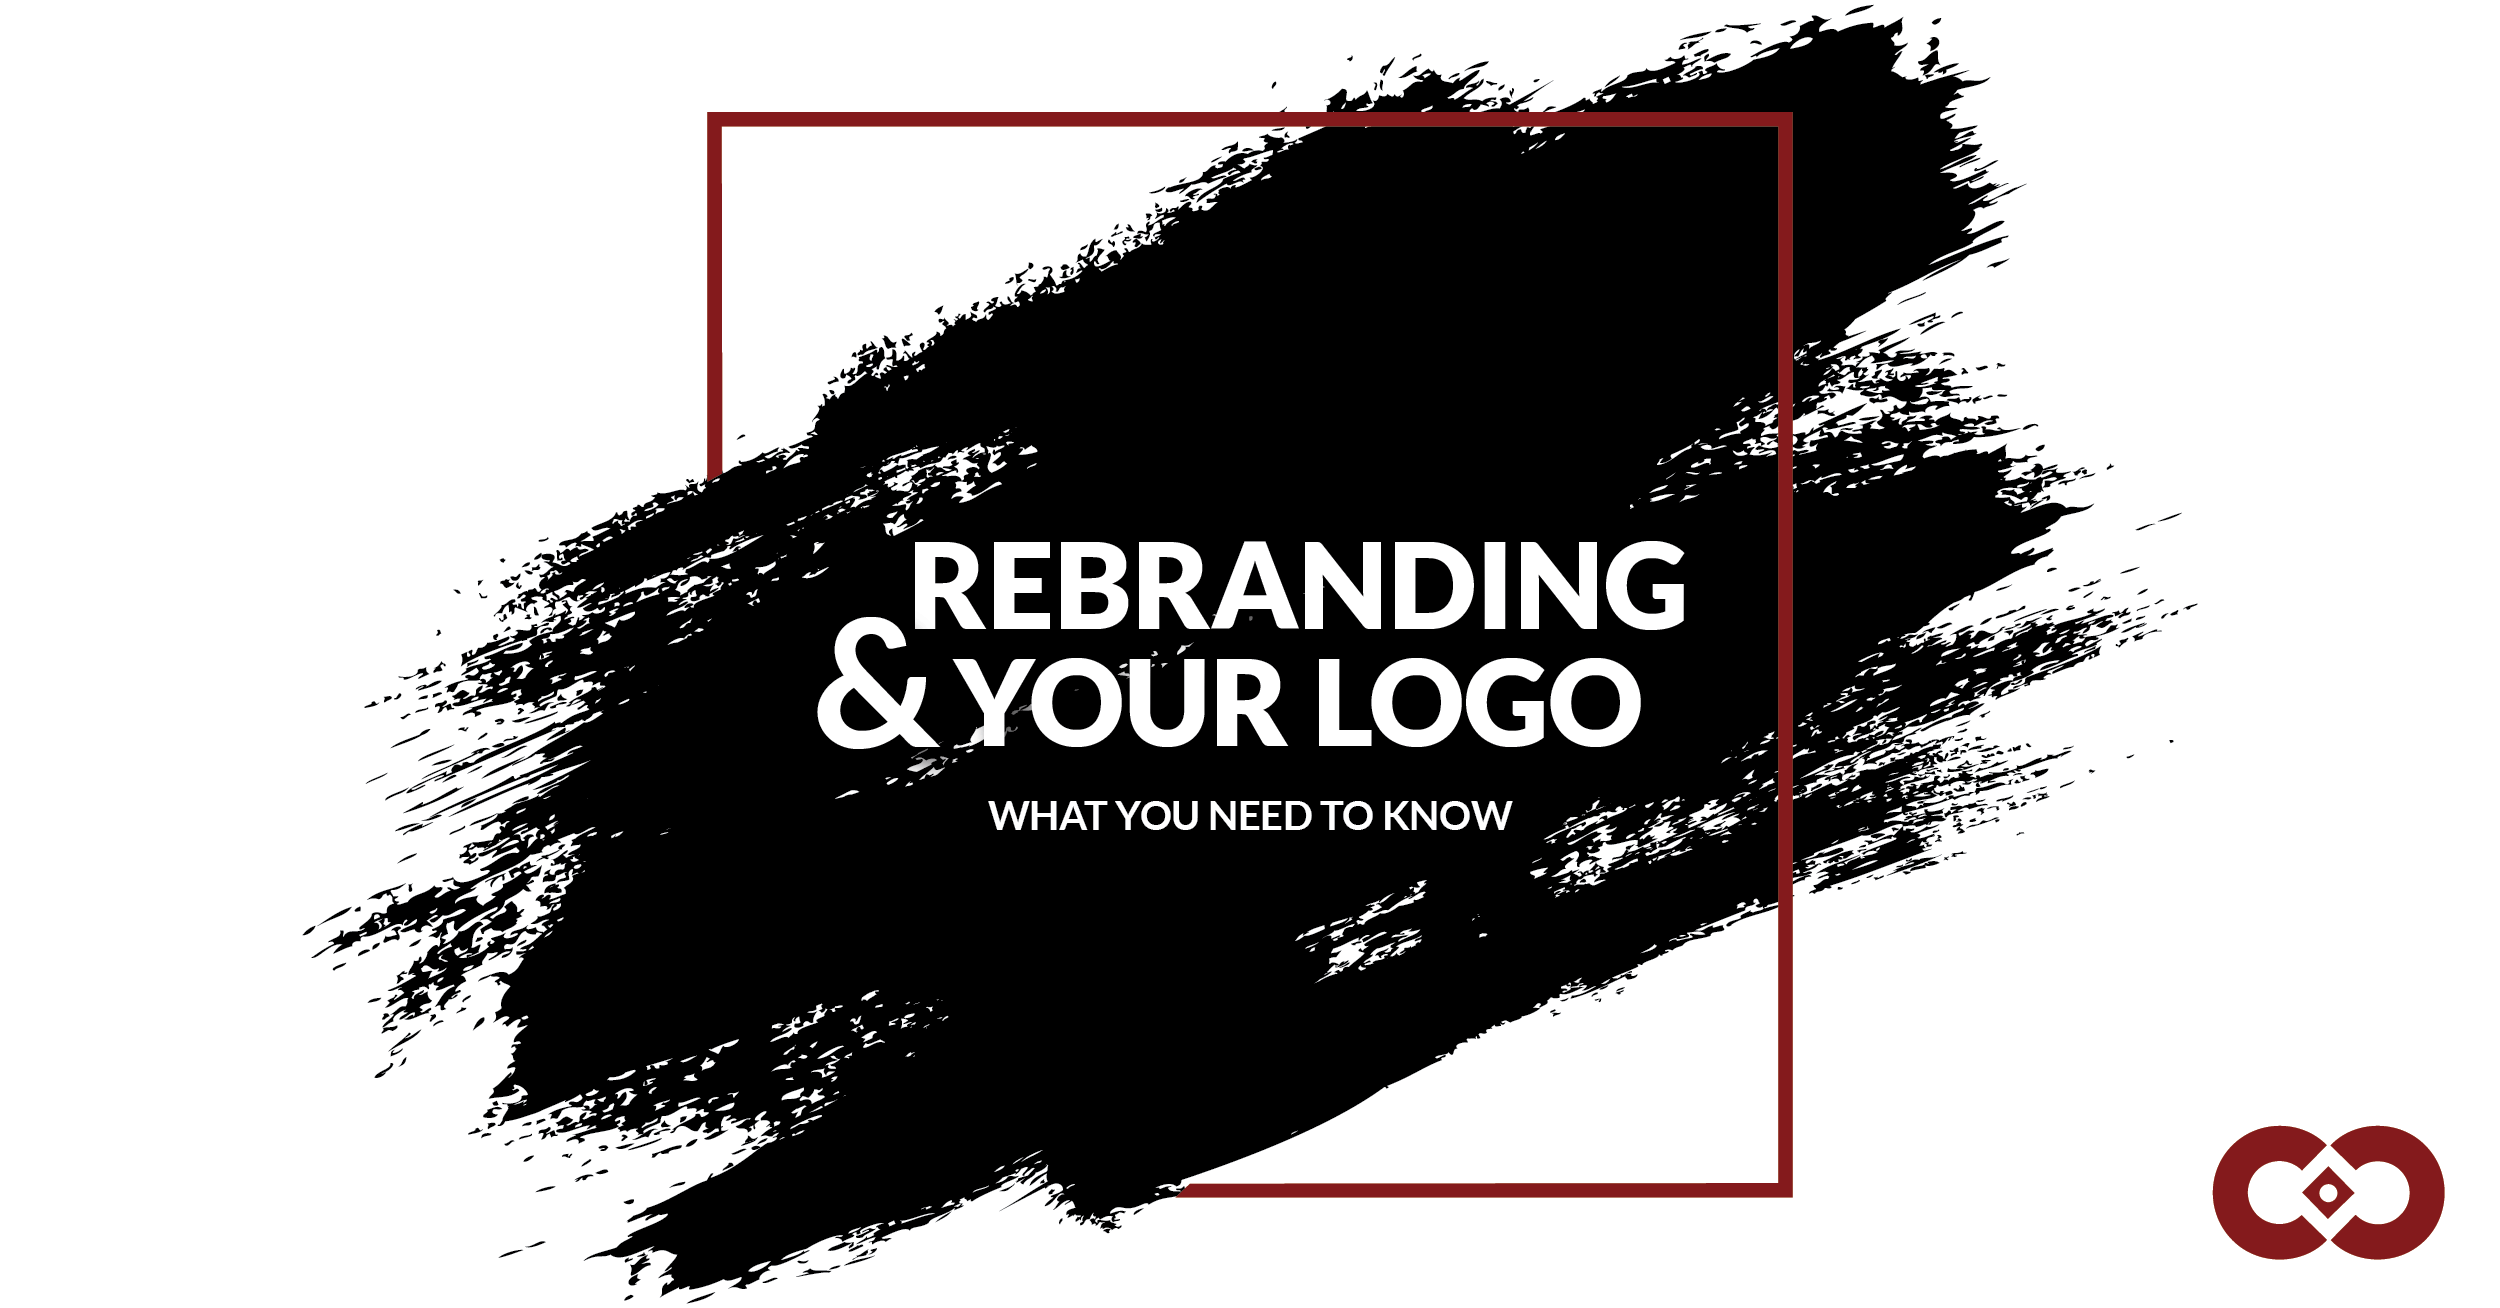 Rebranding & Your Logo: What You Need to Know